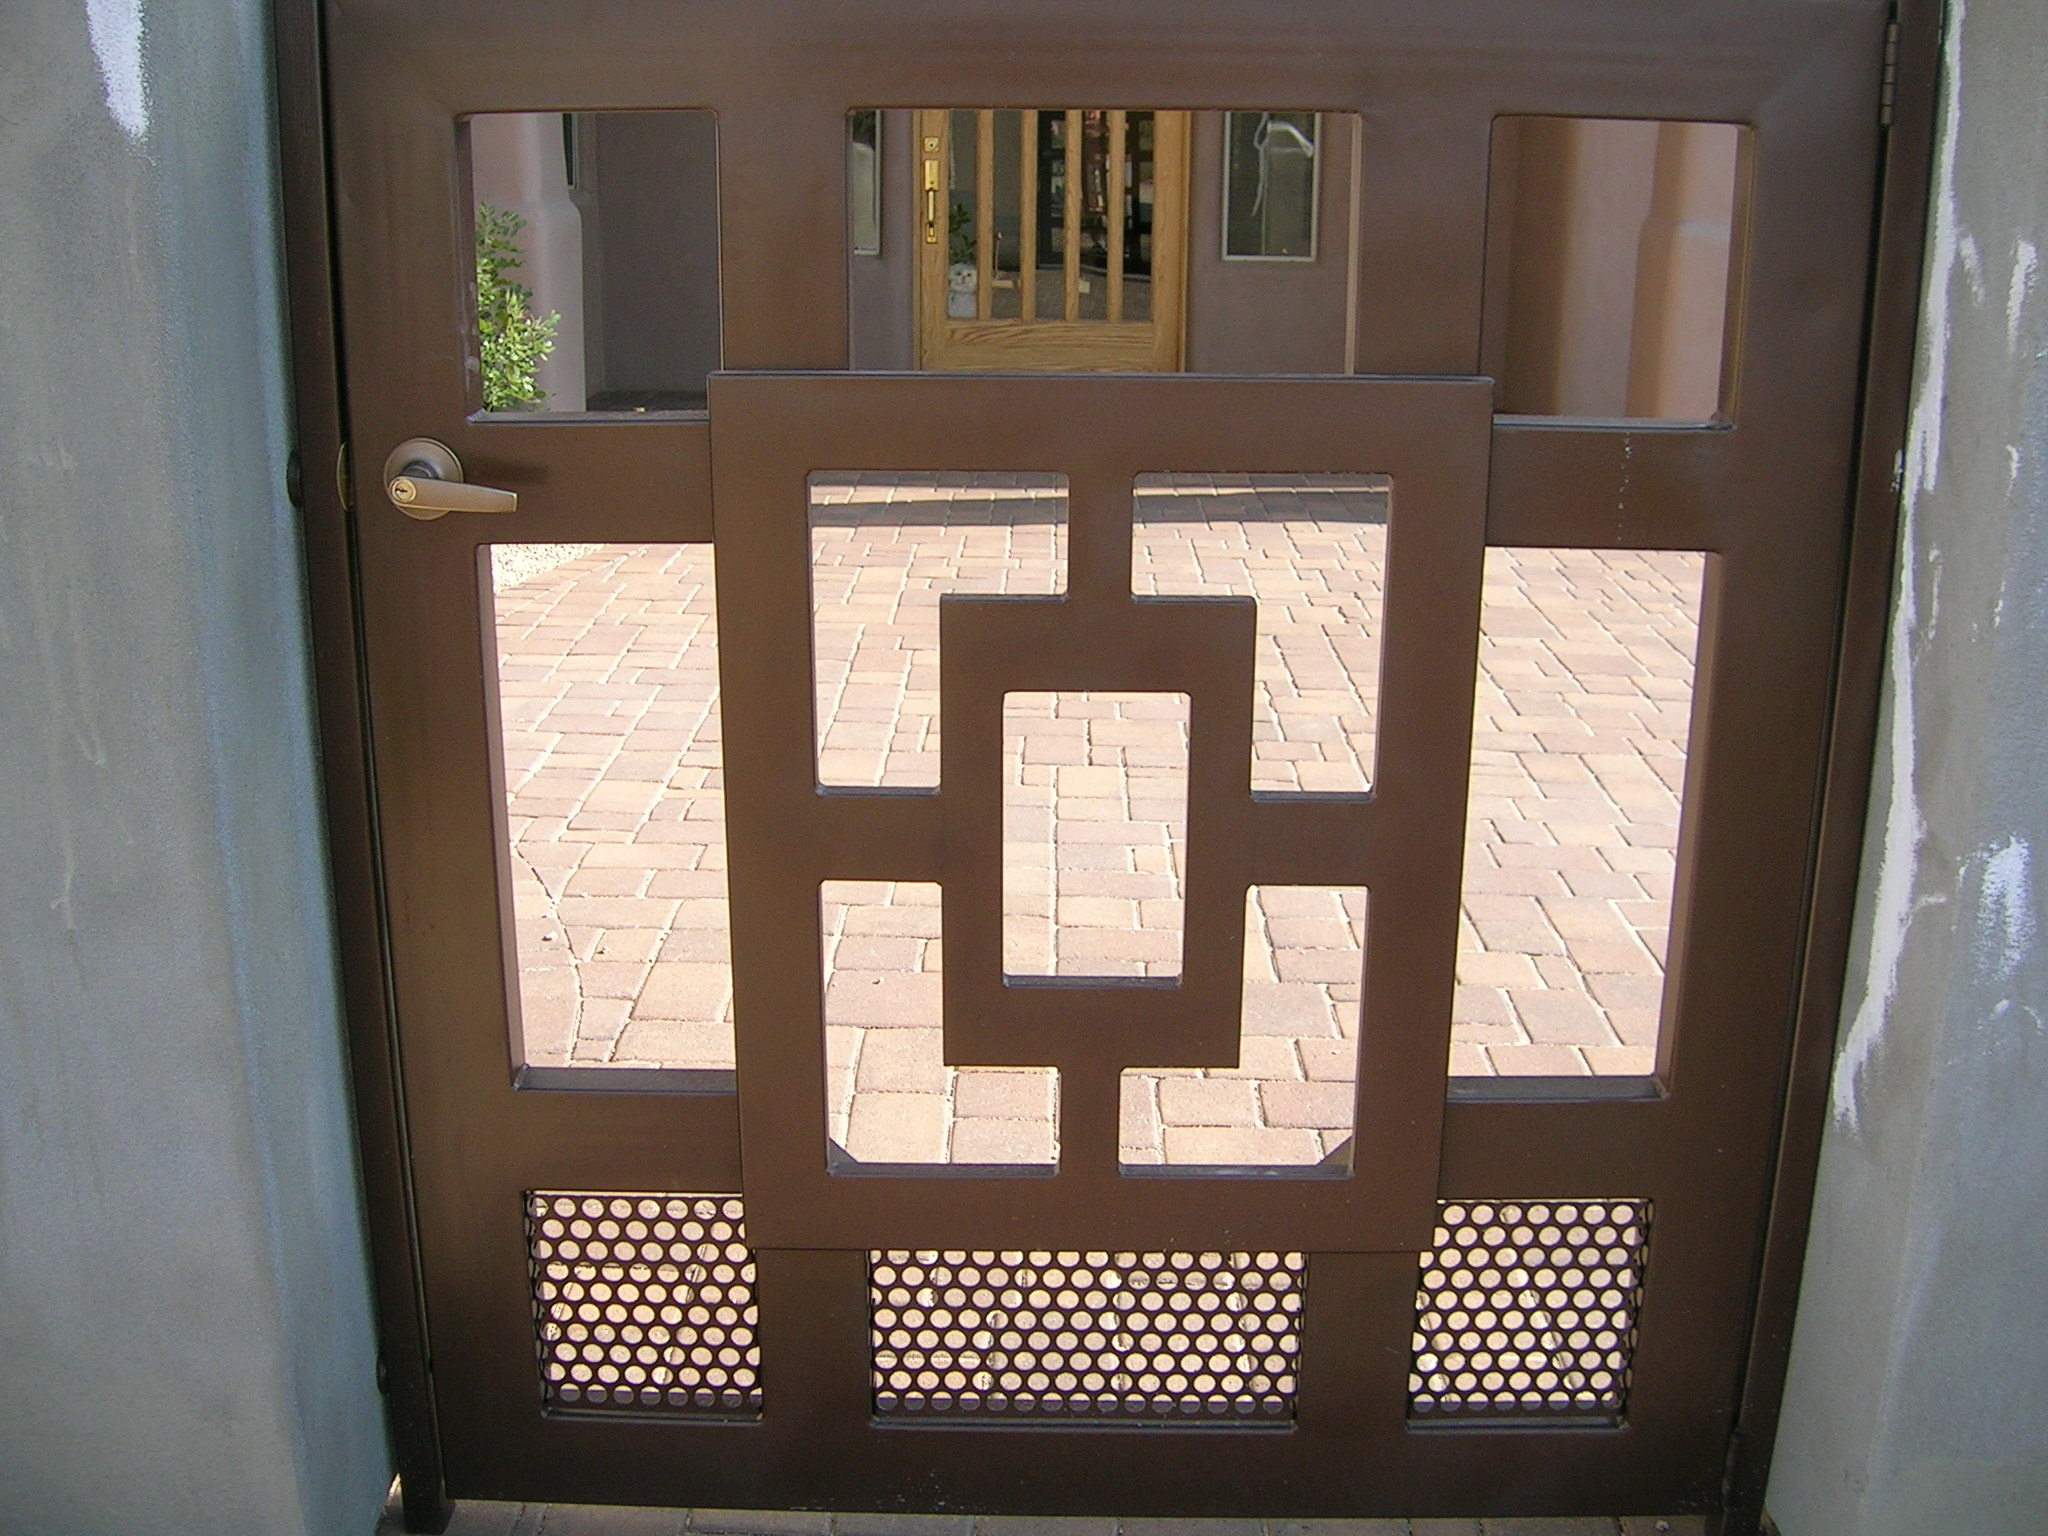 Wrought iron privacy gates -  This Gate Has A Nice Privacy Featuring Wood Topped With Scroll Work If You Have A Space To Close Off This Is A Nice Wrought Iron Wood Scroll Gate To